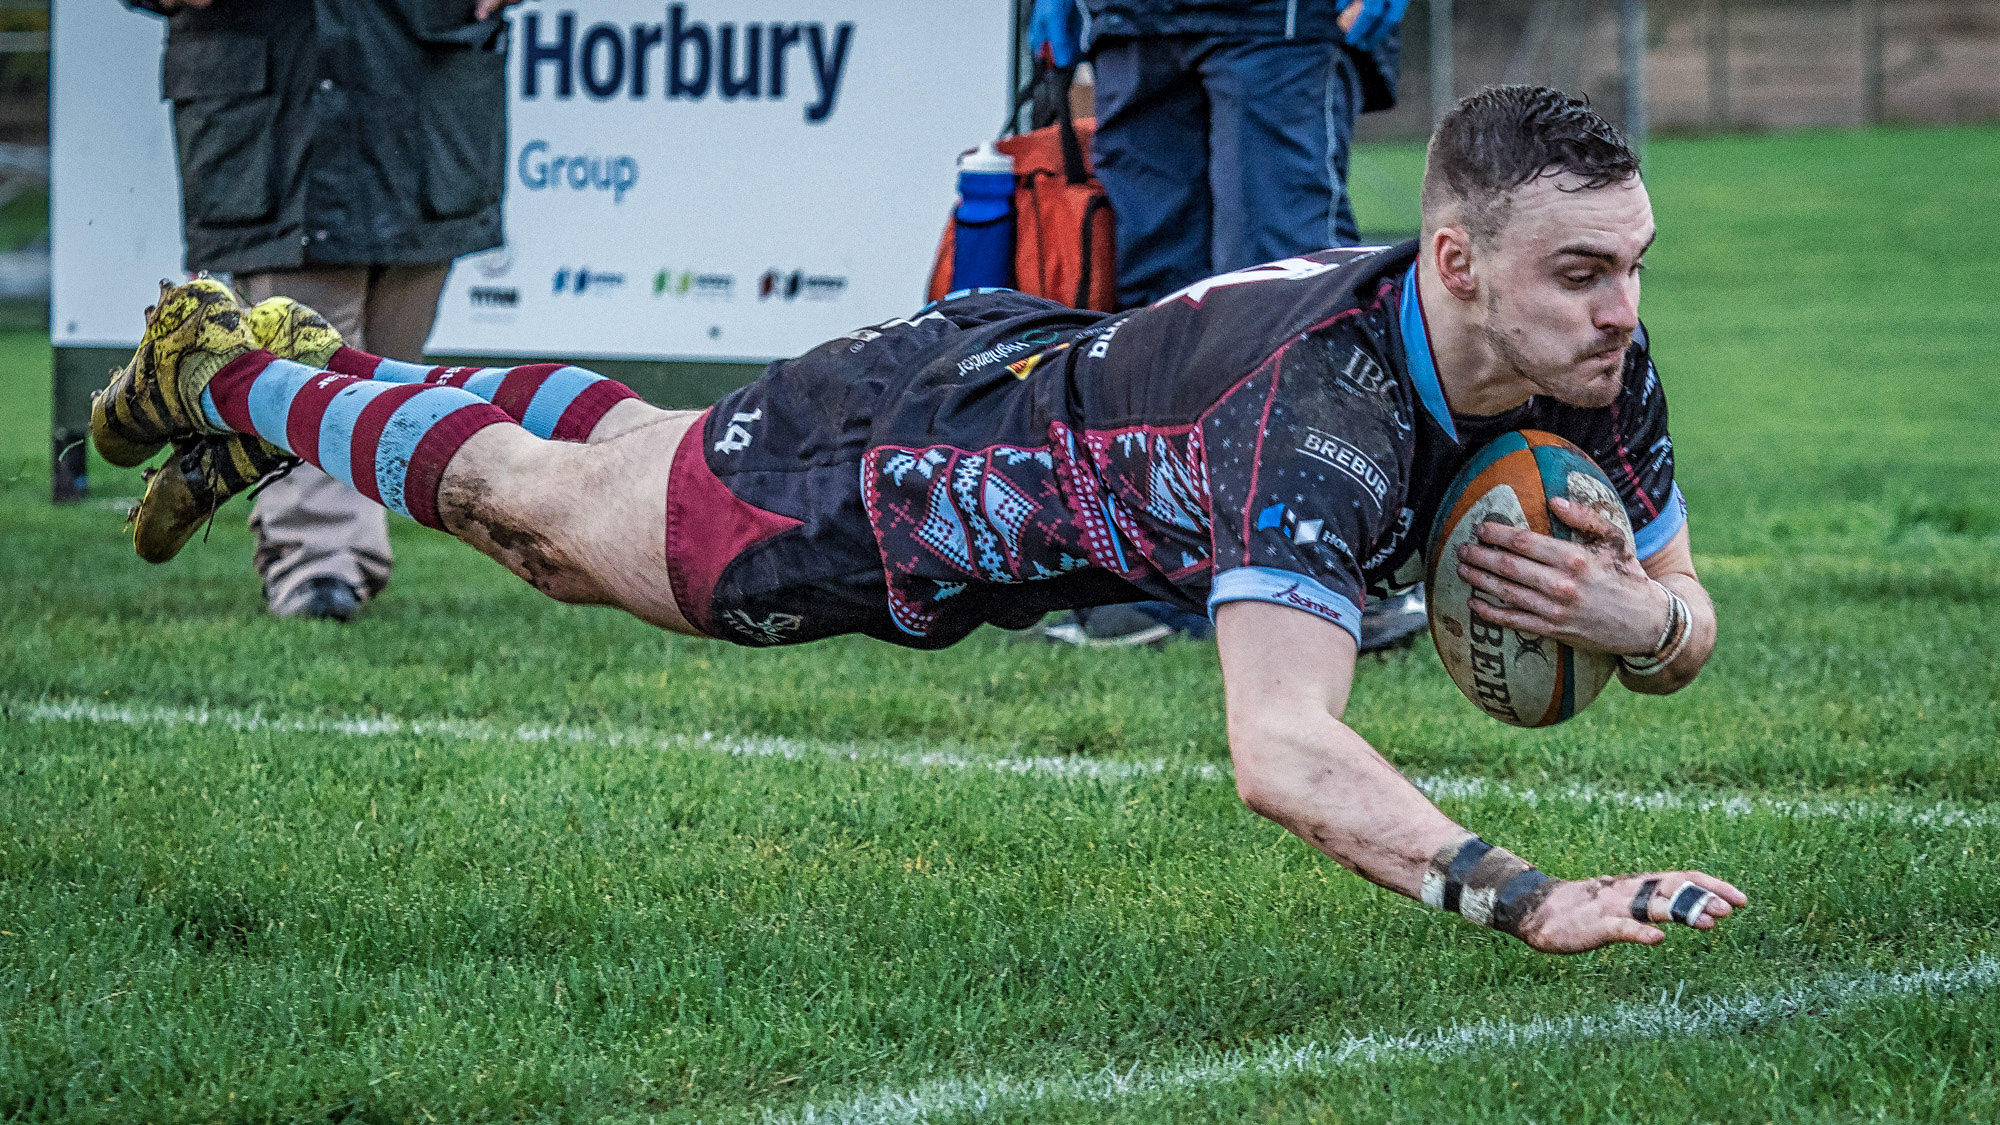 First try for Dan Leake